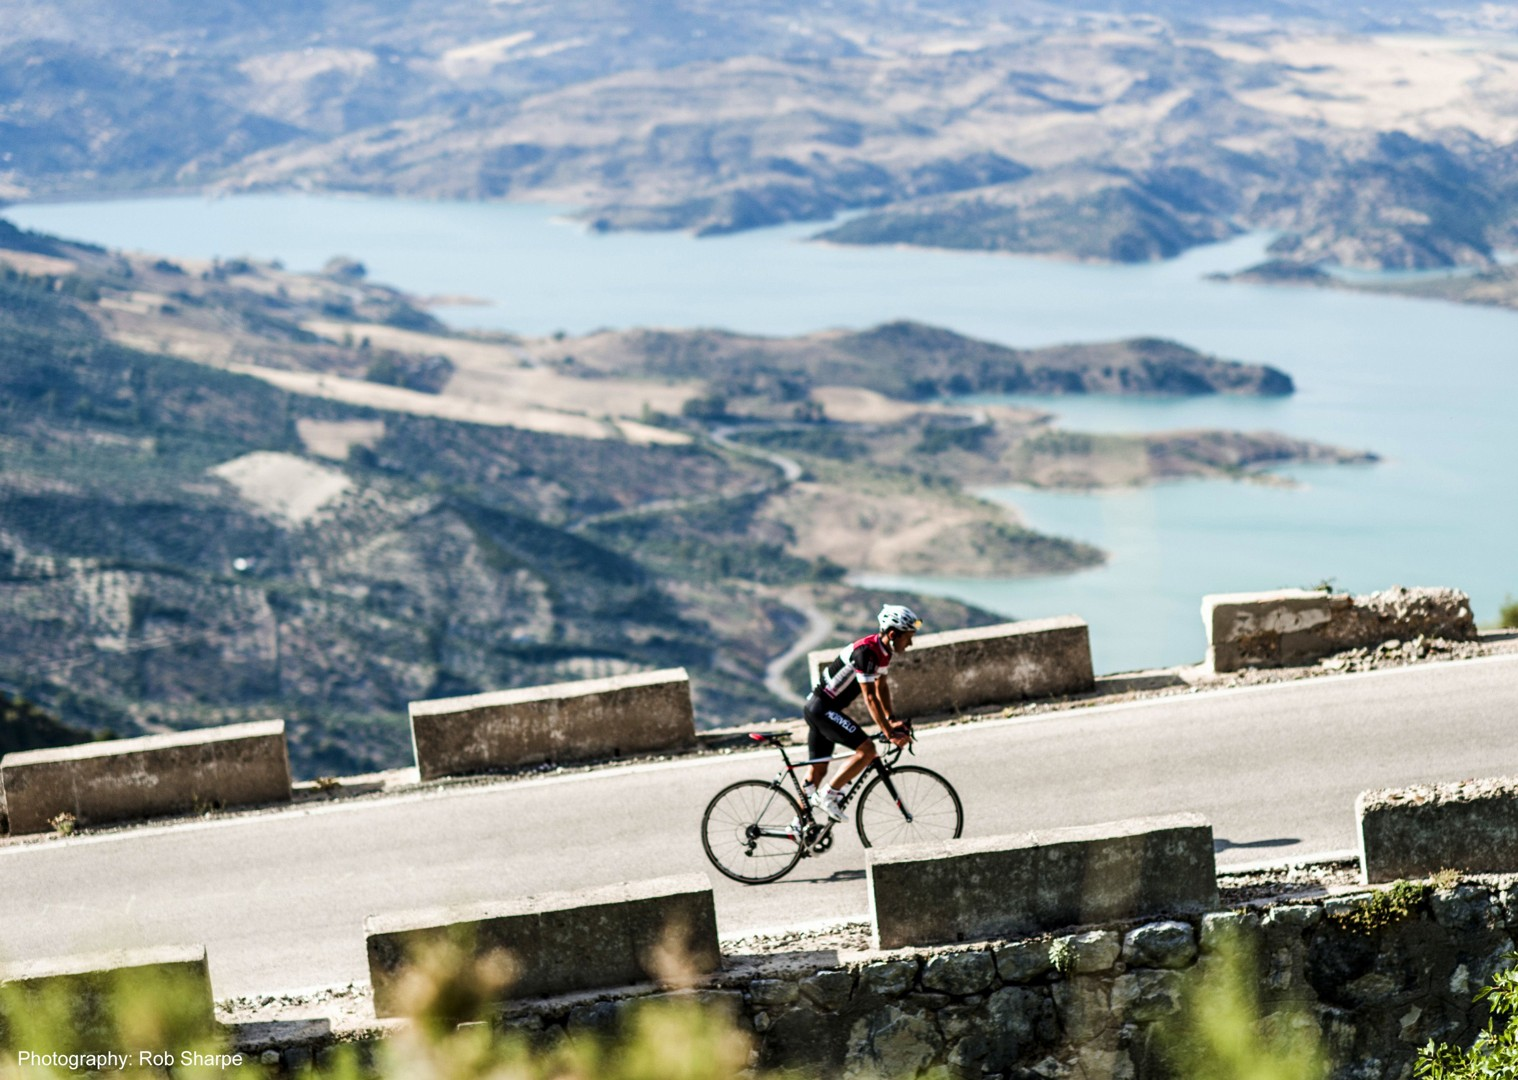 self-guided-road-cycling-holiday-los-pueblos-blancos-andalucia-spain.jpg - Southern Spain - Andalucia - Los Pueblos Blancos - Self-Guided Road Cycling Holiday - Road Cycling